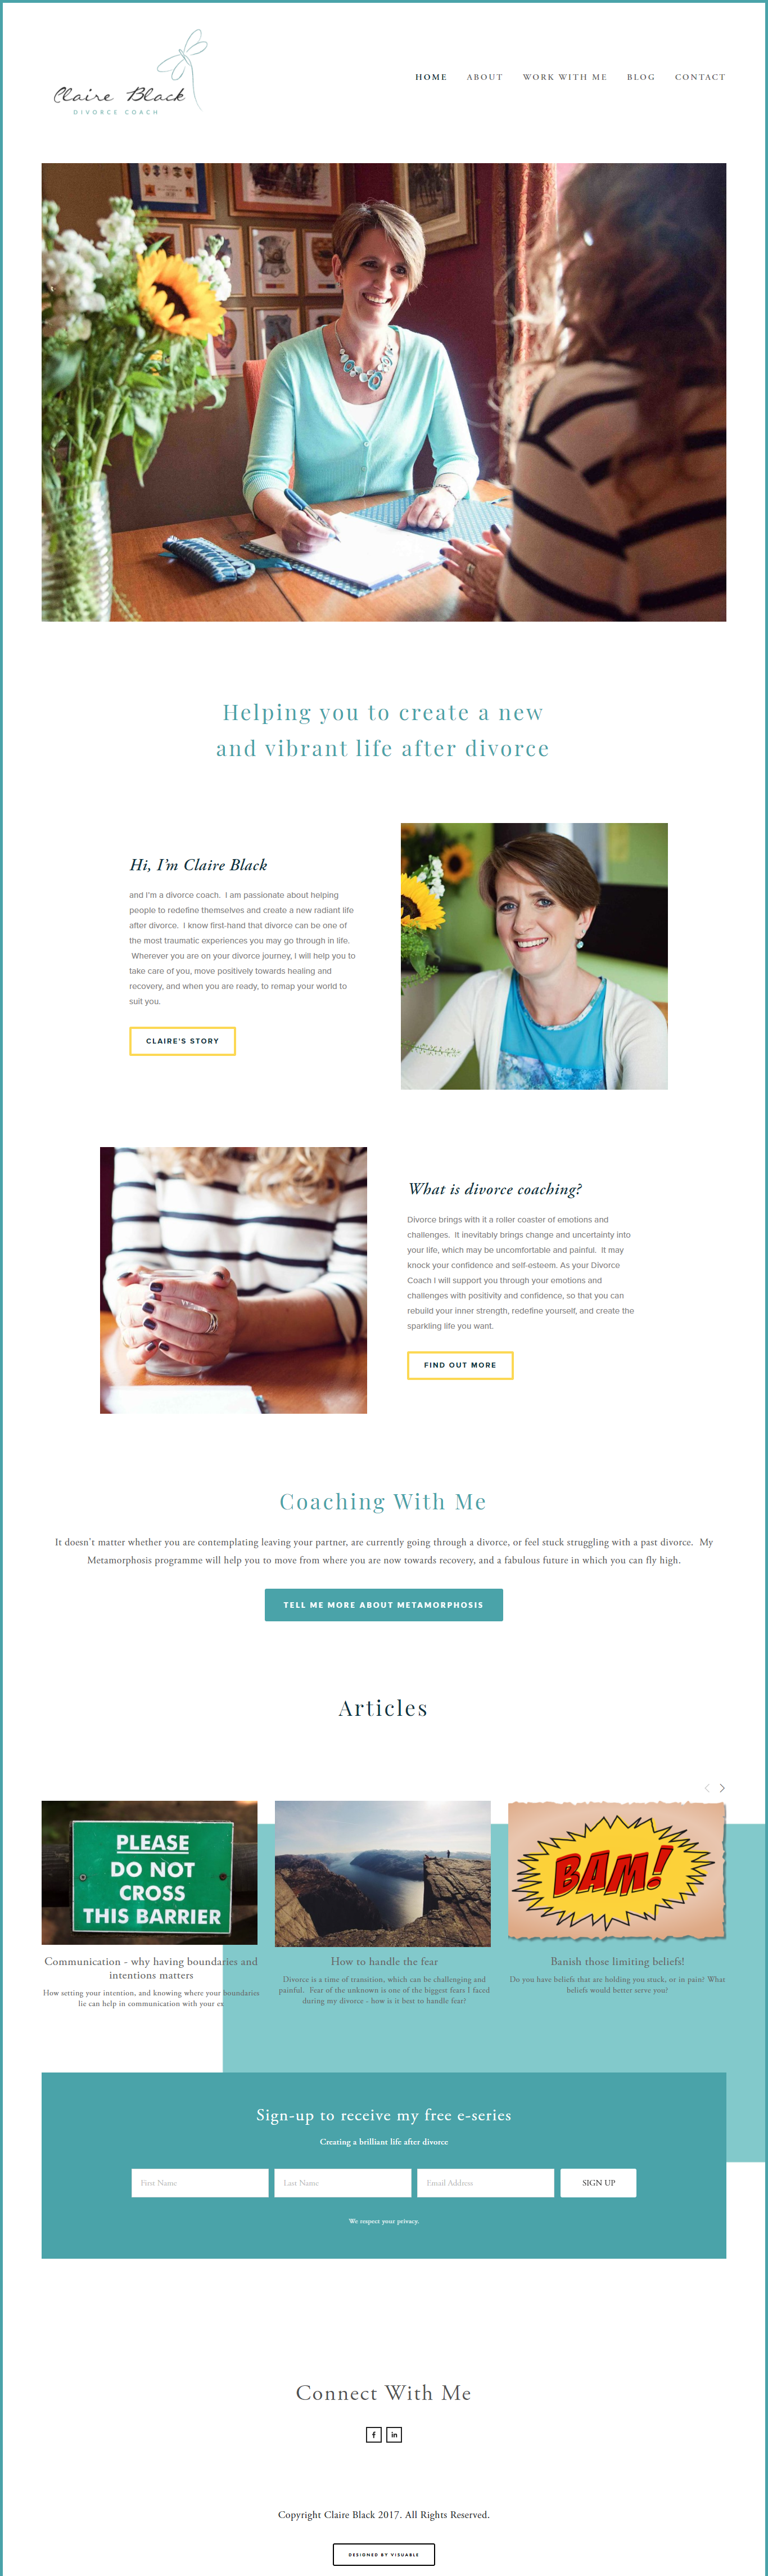 Web Design in Bristol for Claire Black by Visuable